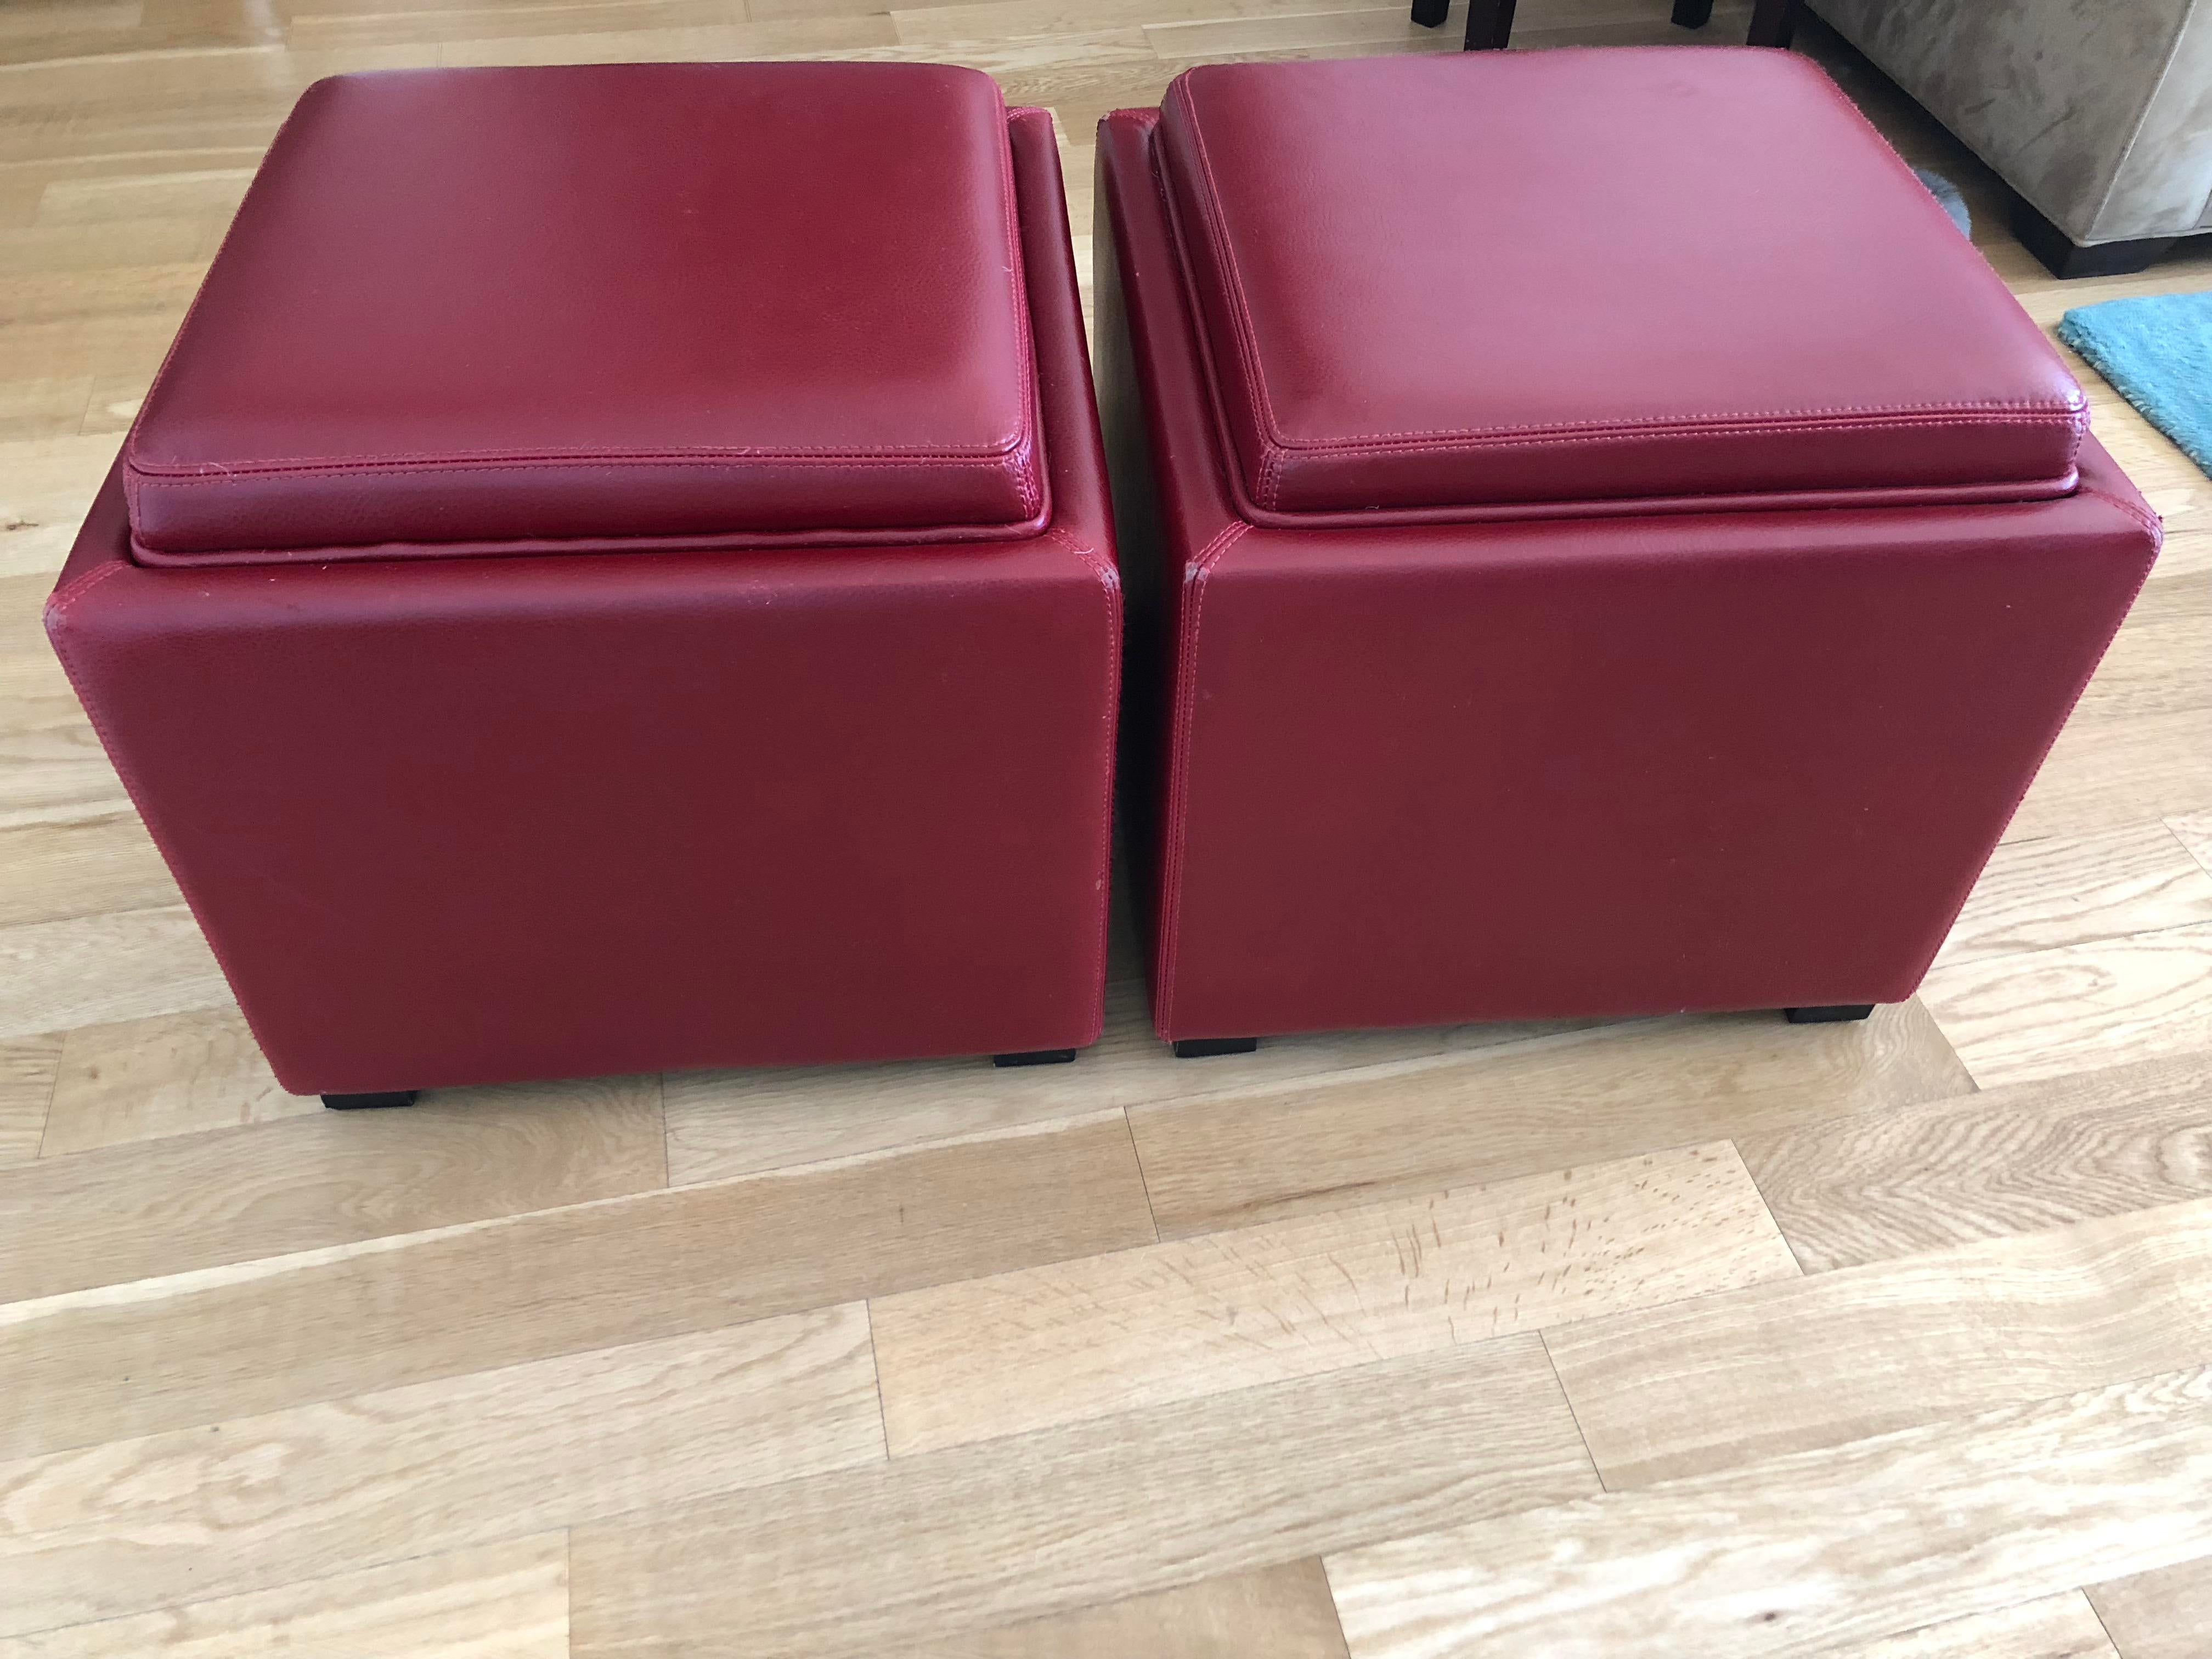 Charmant 2010s Stow Leather Storage Ottoman For Sale   Image 5 Of 5